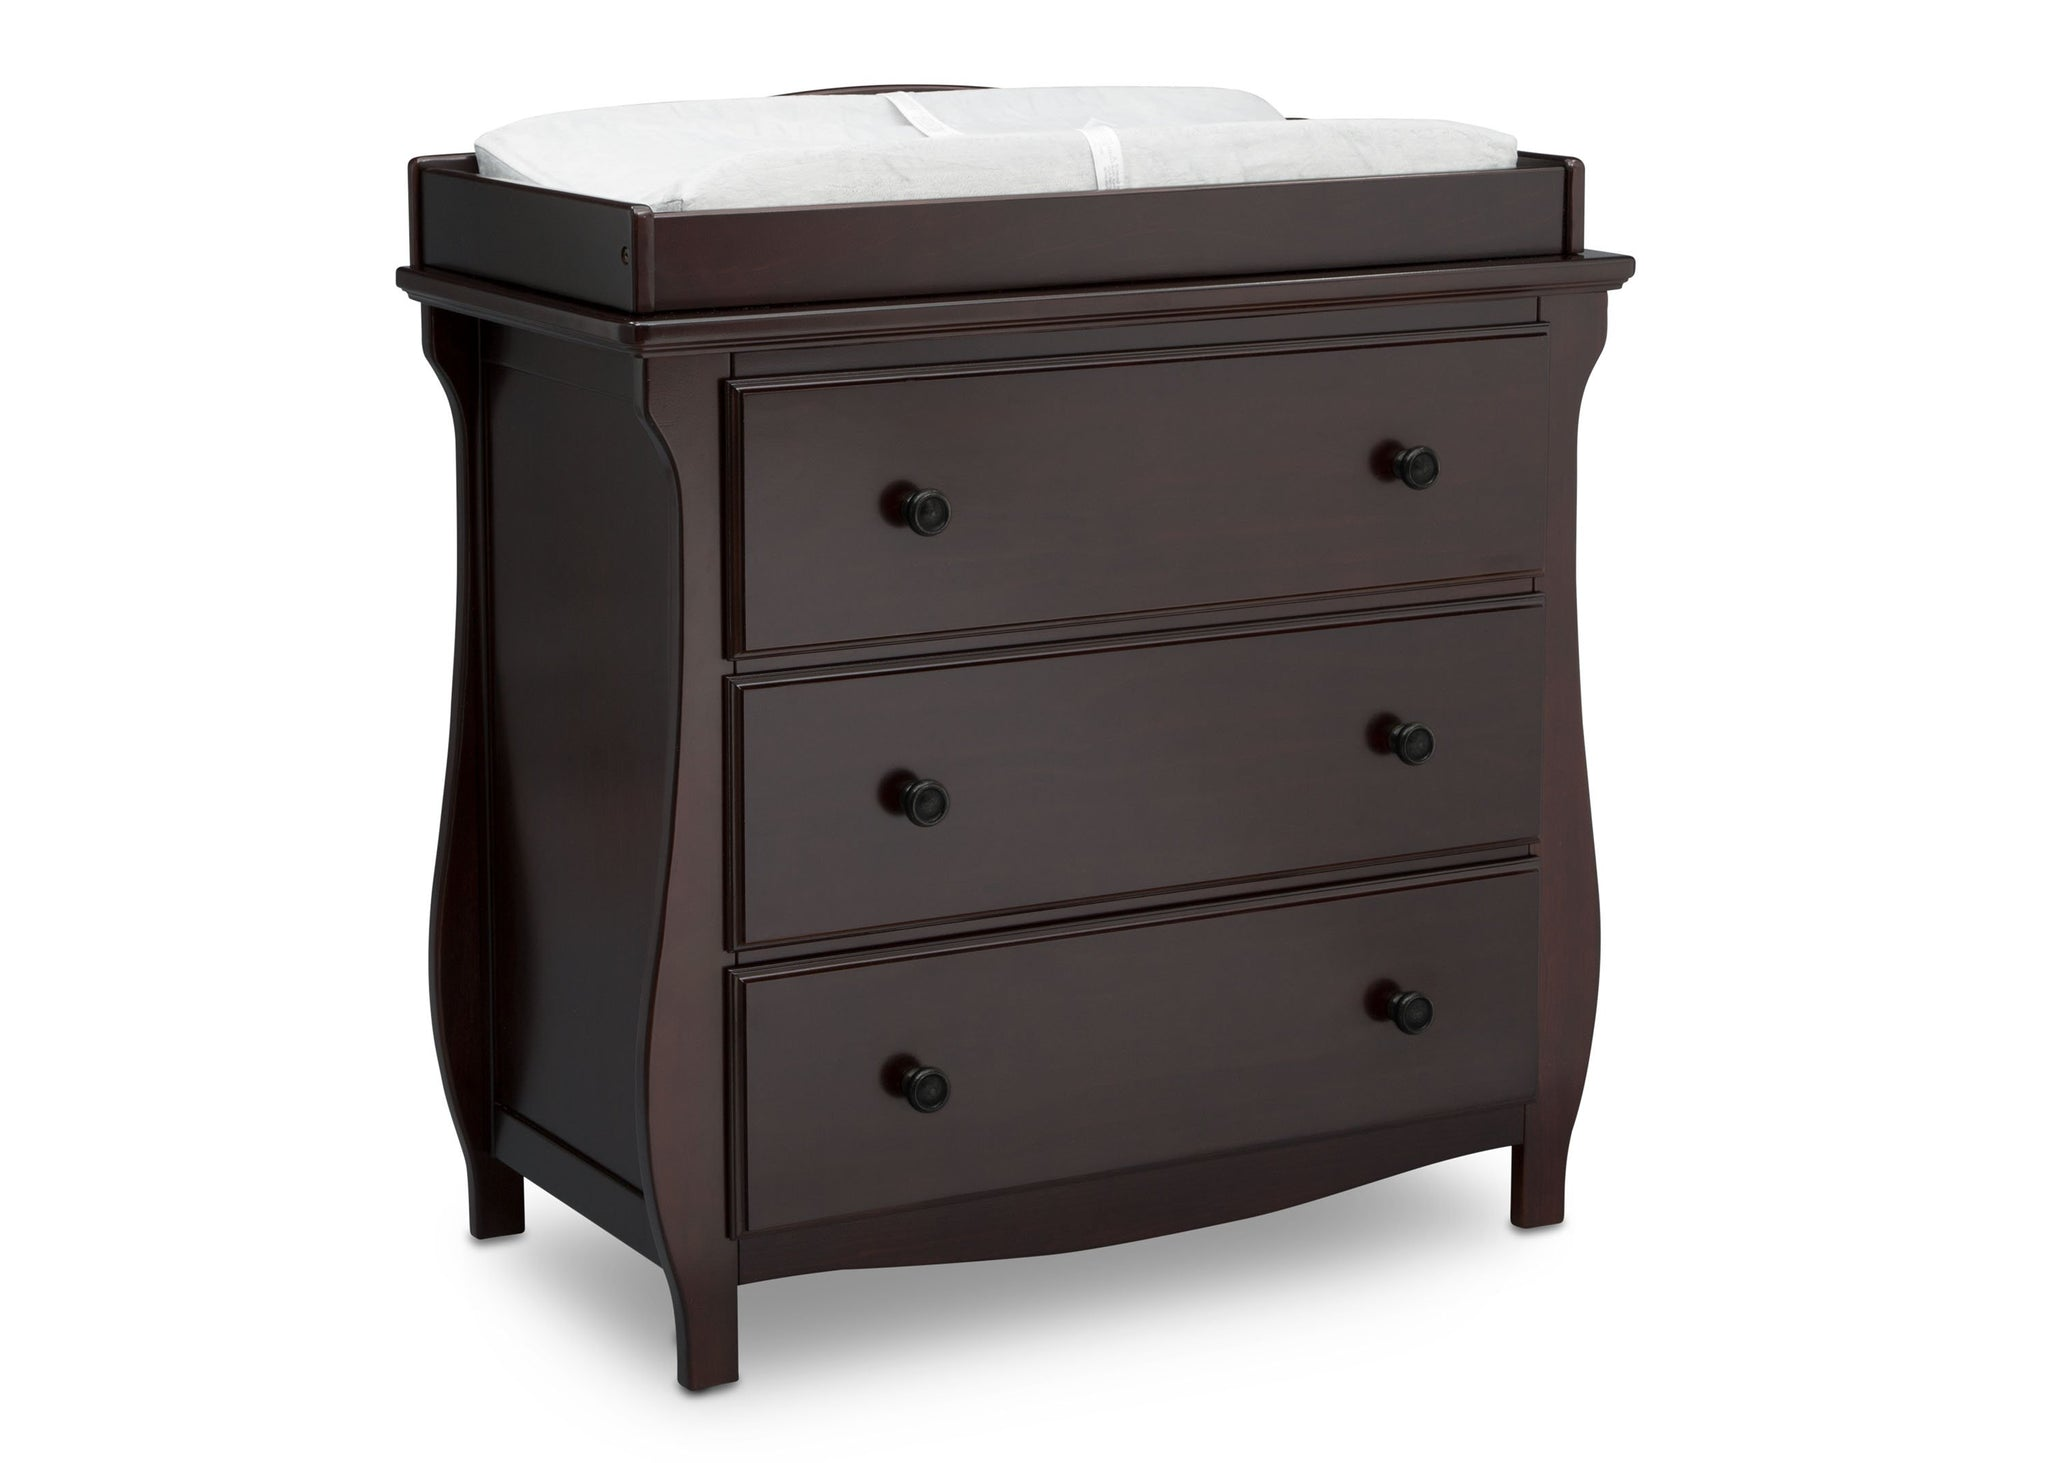 Delta Children Dark Chocolate (207) Lancaster 3 Drawer Dresser with Changing Top (552030), Side View, c3c